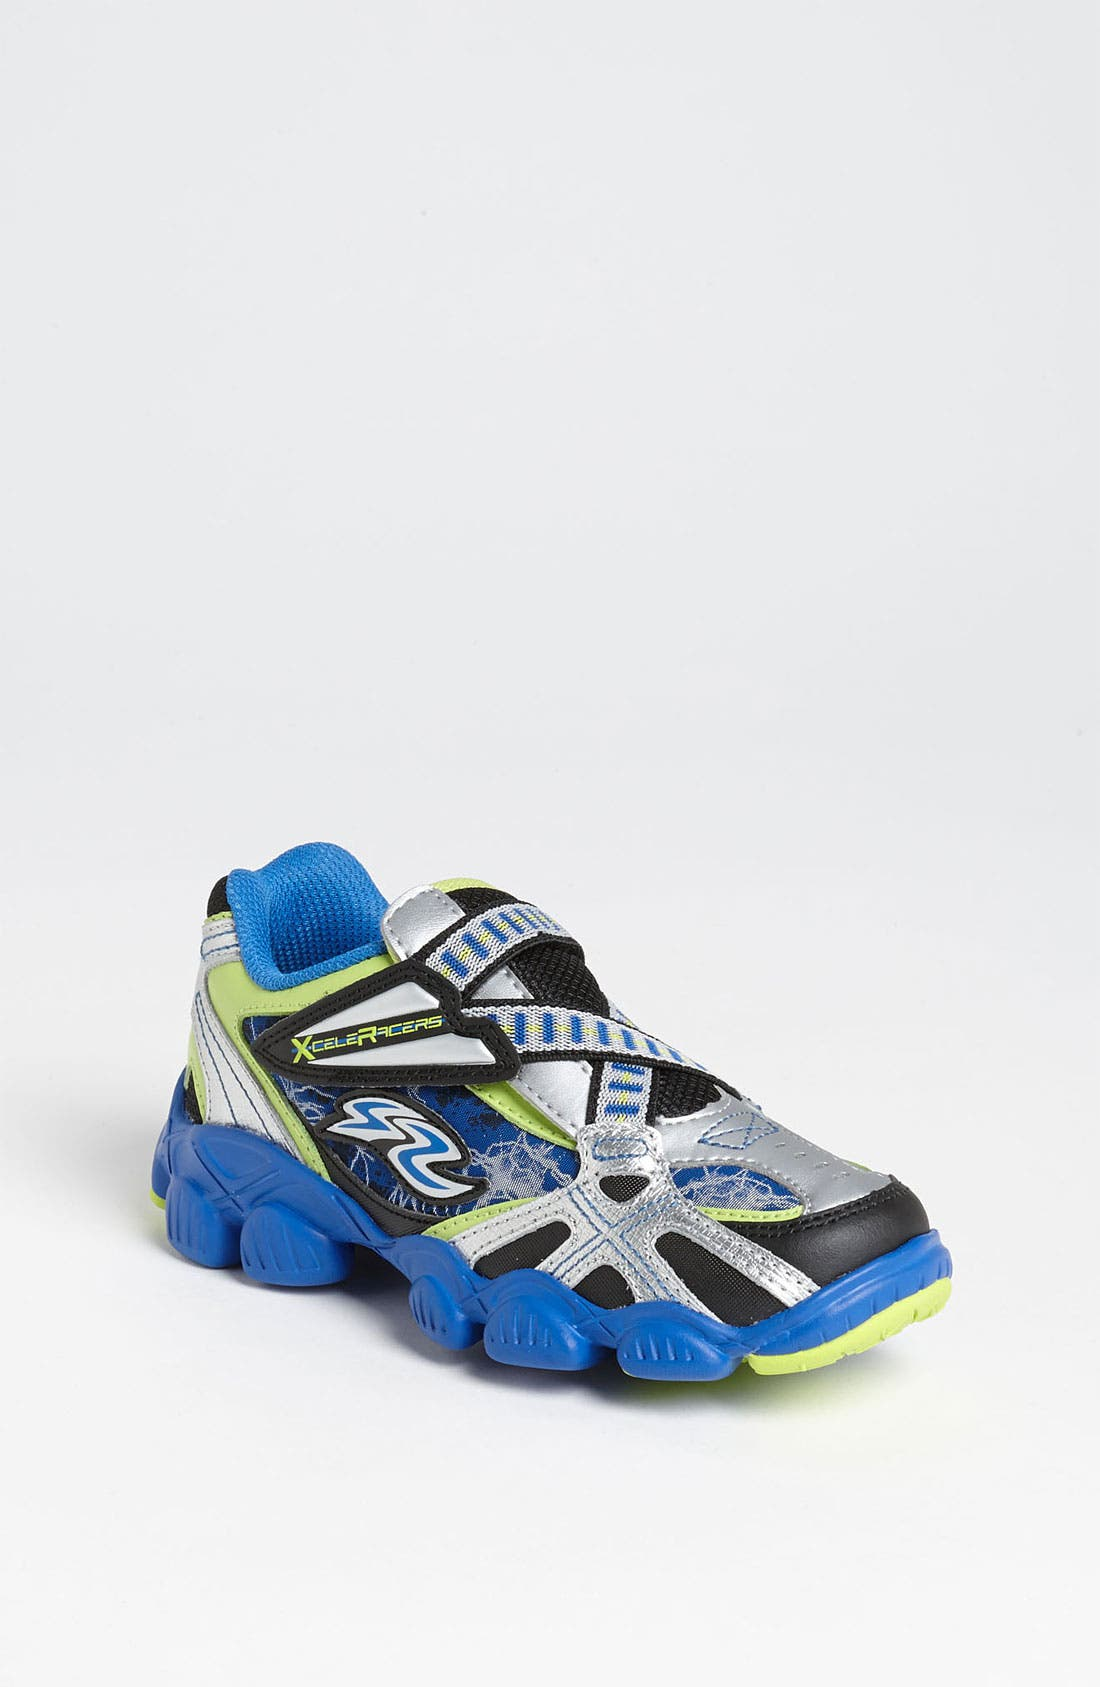 Main Image - Stride Rite 'X-celeracer' Sneaker (Toddler & Little Kid)